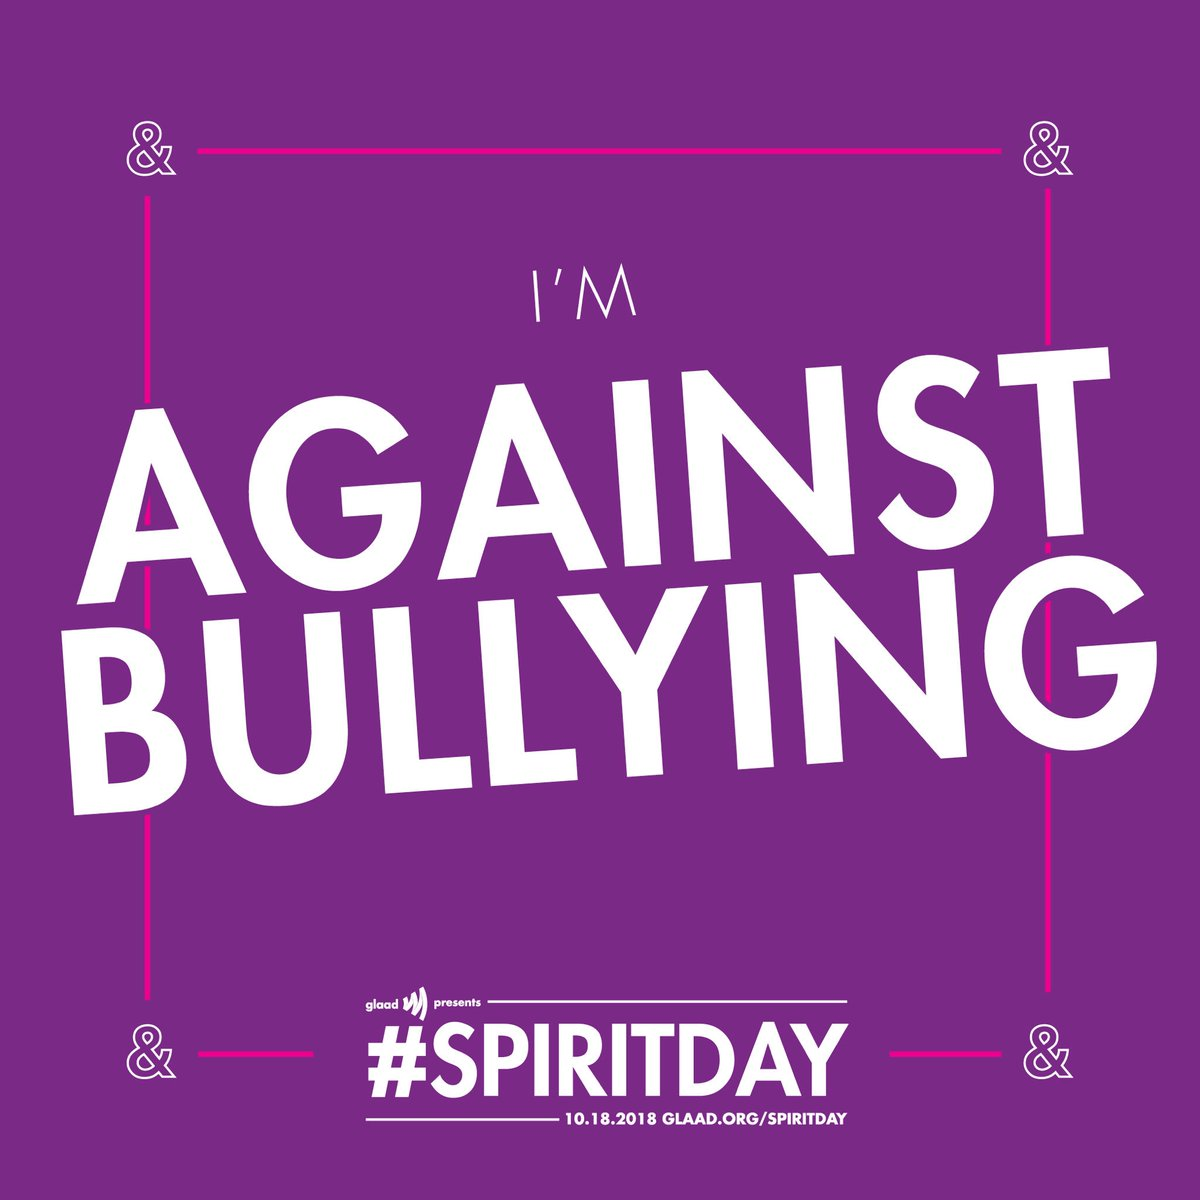 Today is @glaad #SpiritDay! Let's show our support for LGBTQ youth and stand up against bullying! Take the pledge to go purple 💜 https://t.co/tAUMYH3gIl